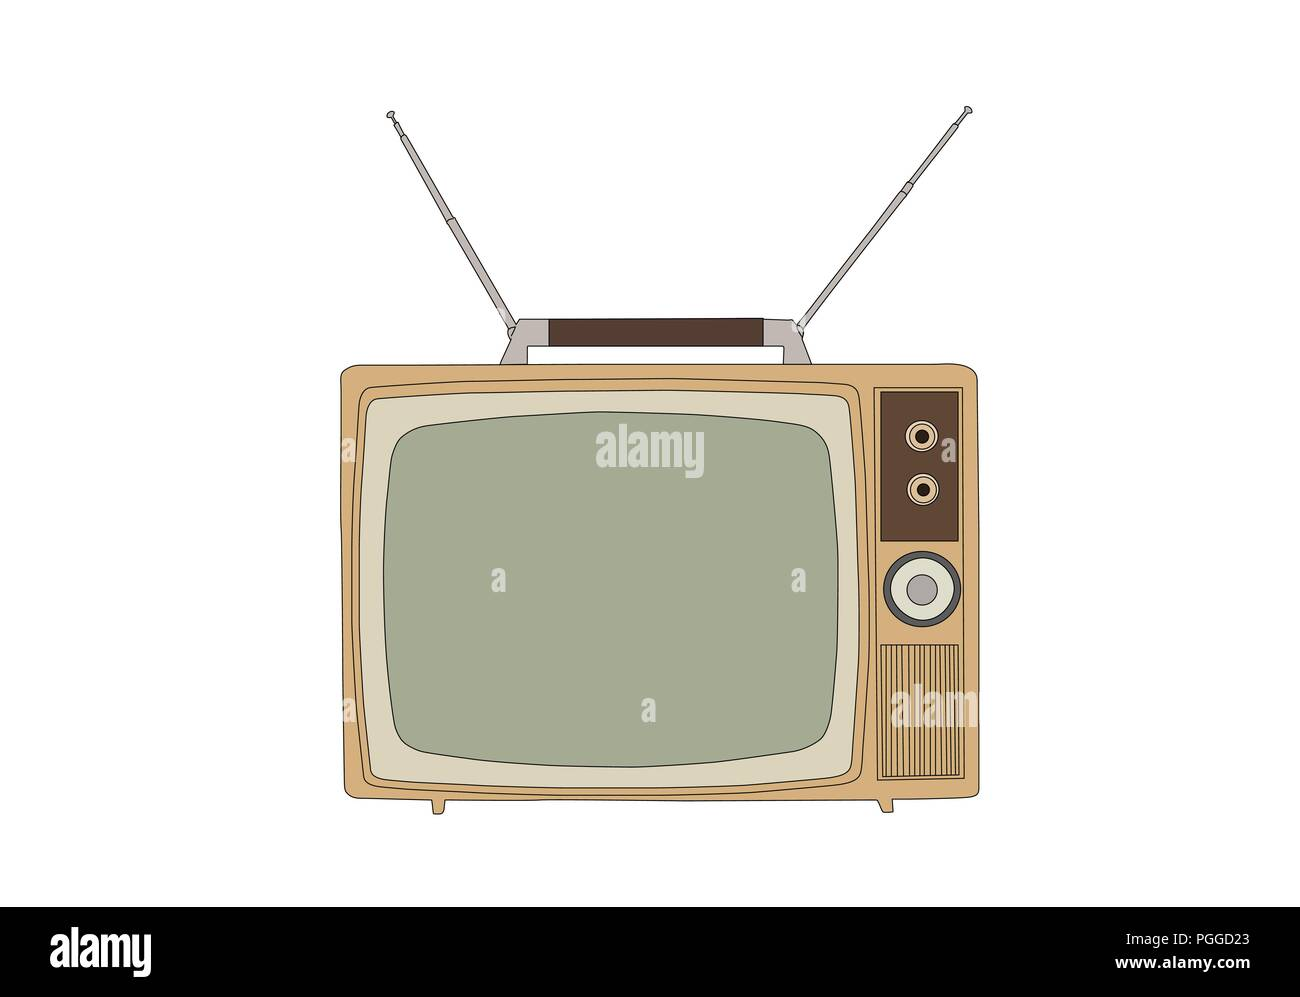 Retro 1960s vintage television isolated on white vector illustration. - Stock Image